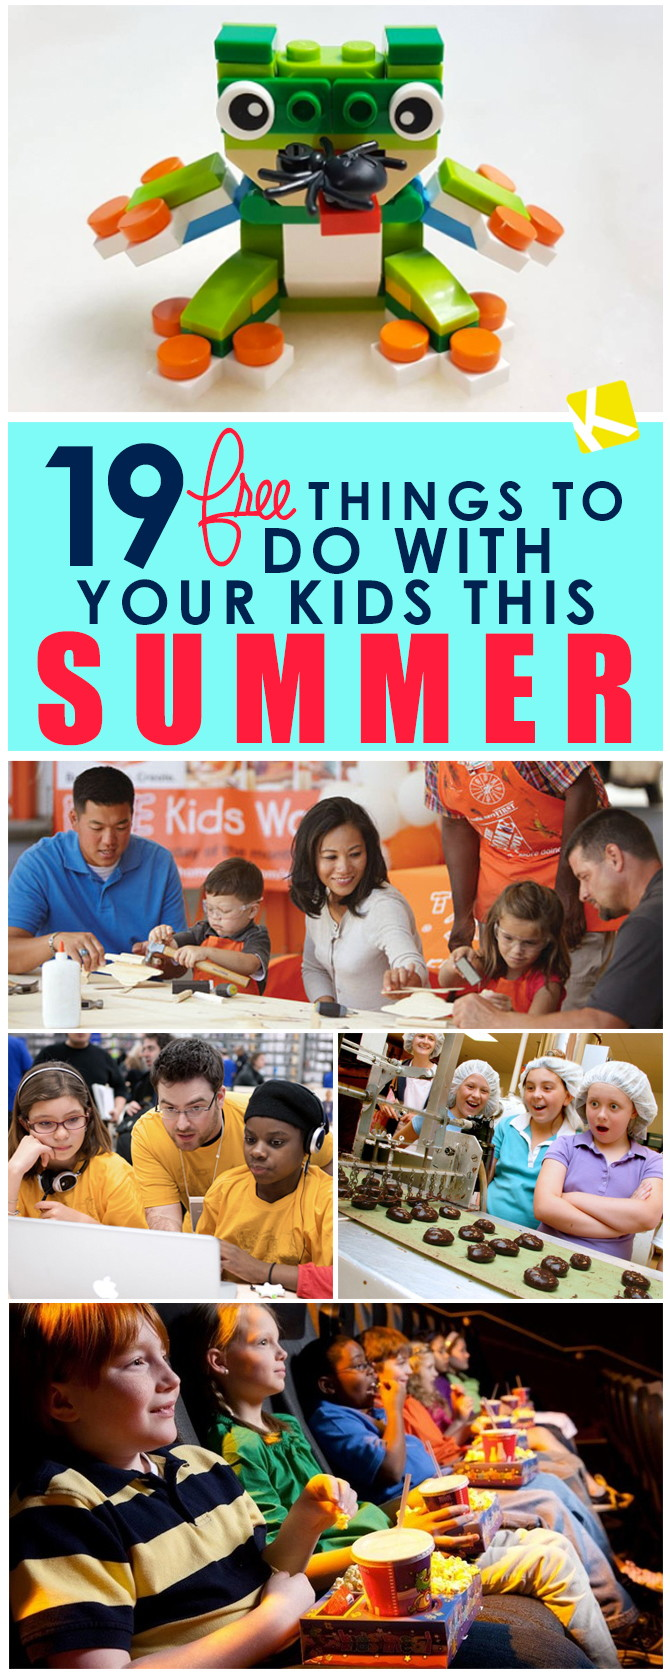 19 Free Things To Do With Your Kids This Summer The